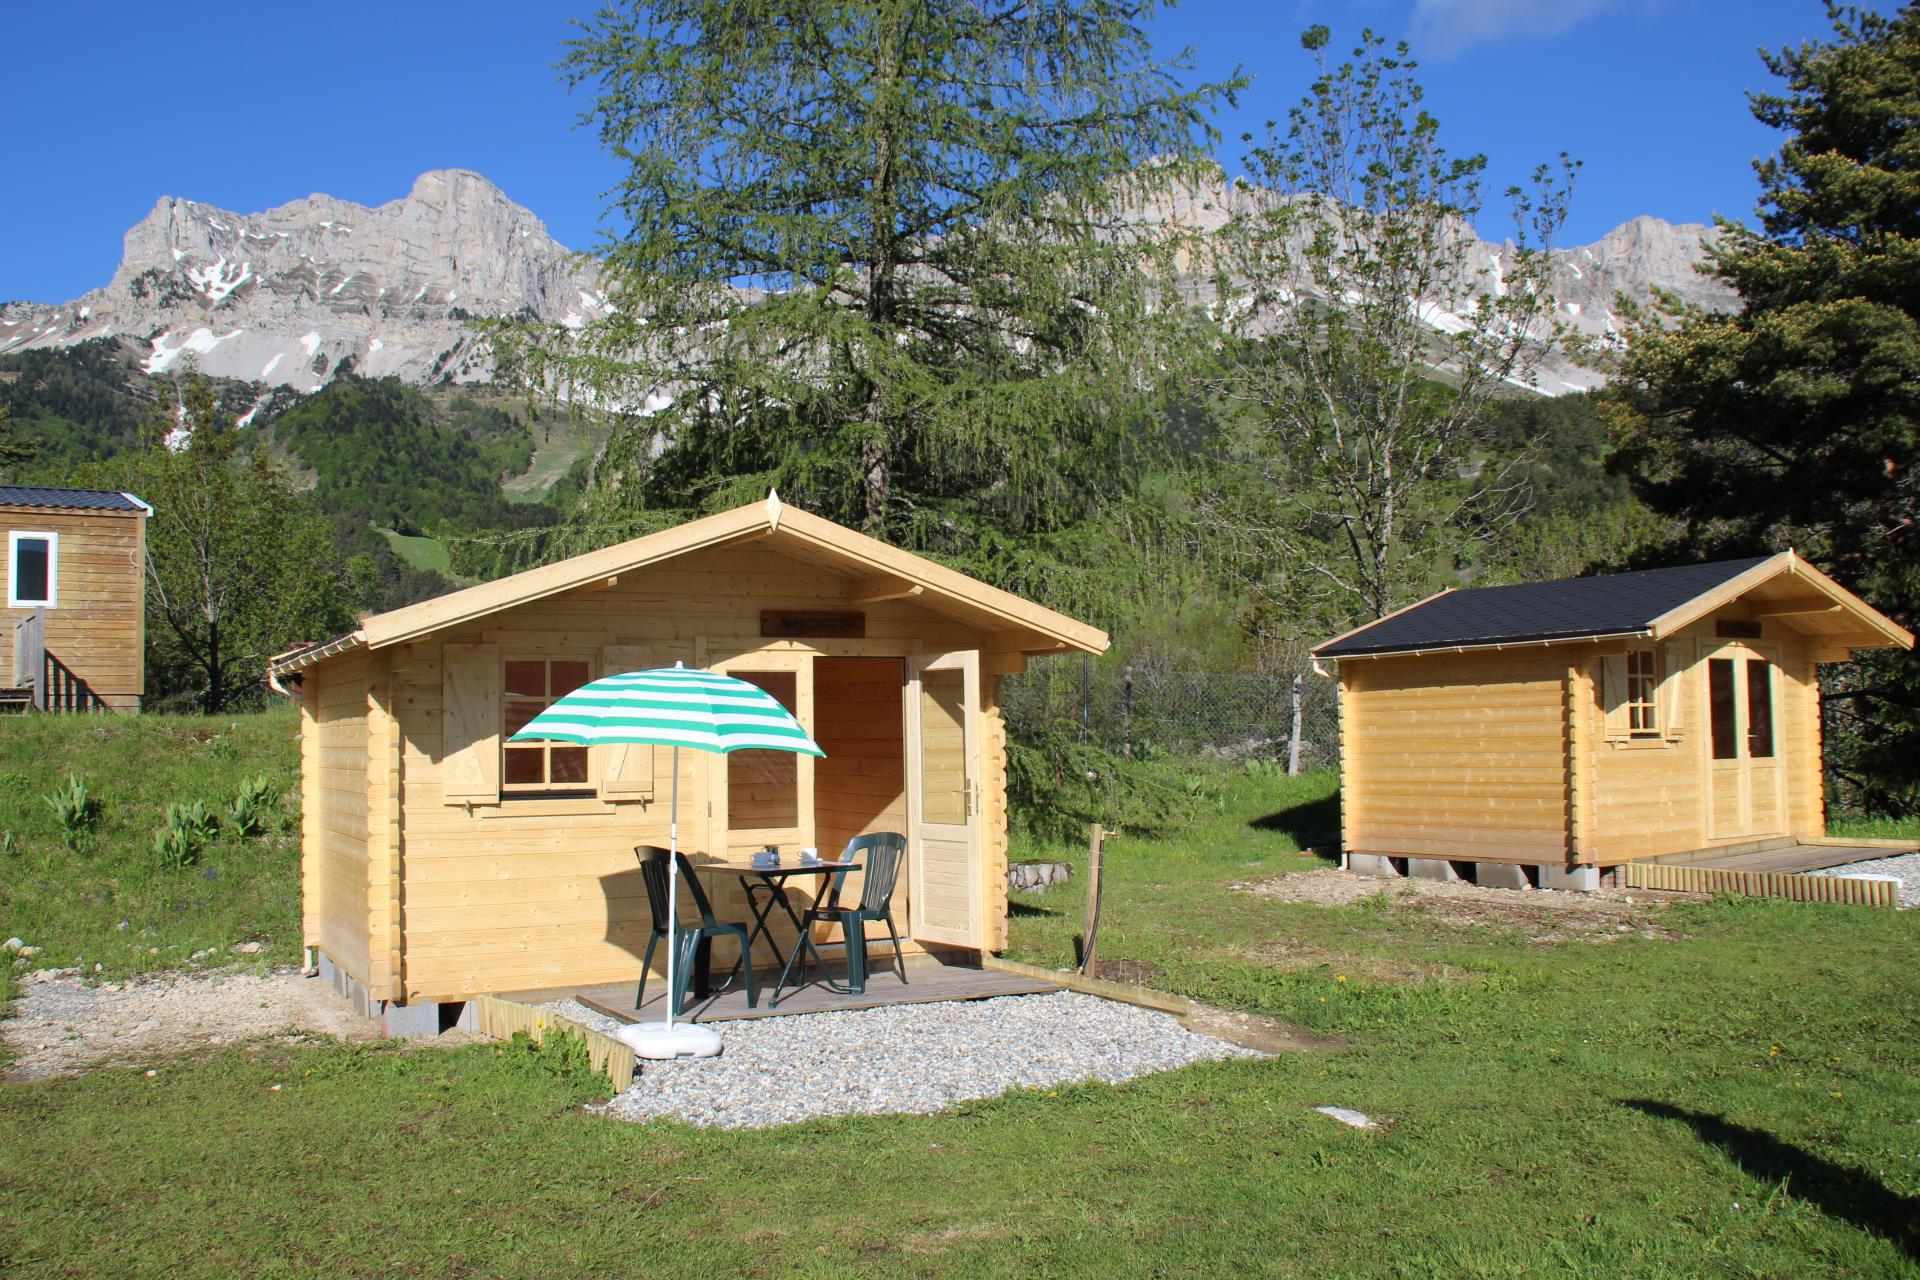 Huuraccommodaties - Mini-Chalet  Narcisse - Camping Les 4 Saisons